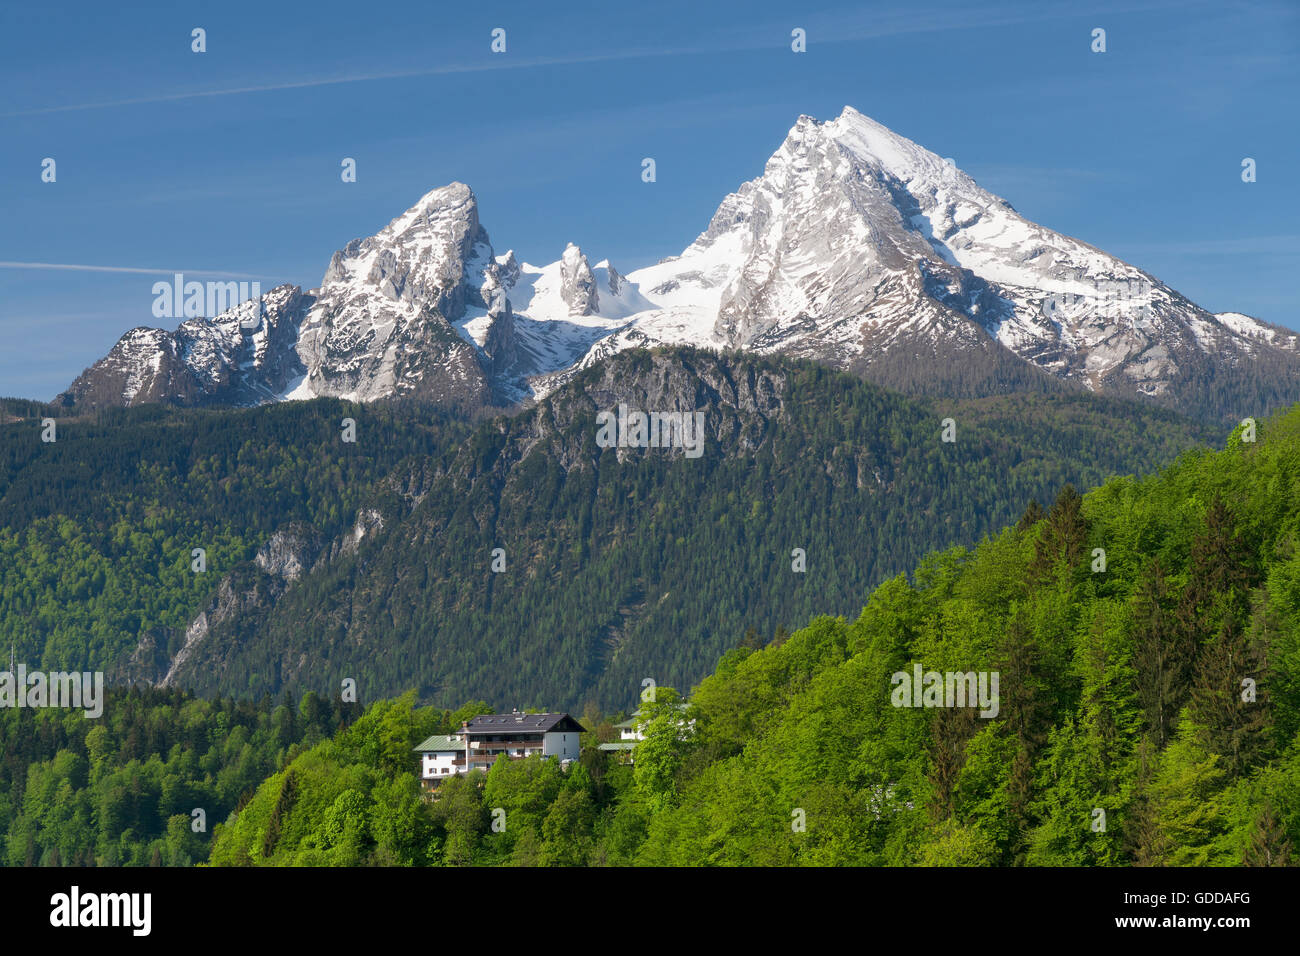 imposing Watzmann (2,713 meter) in the Berchtesgaden area,Germany - Stock Image